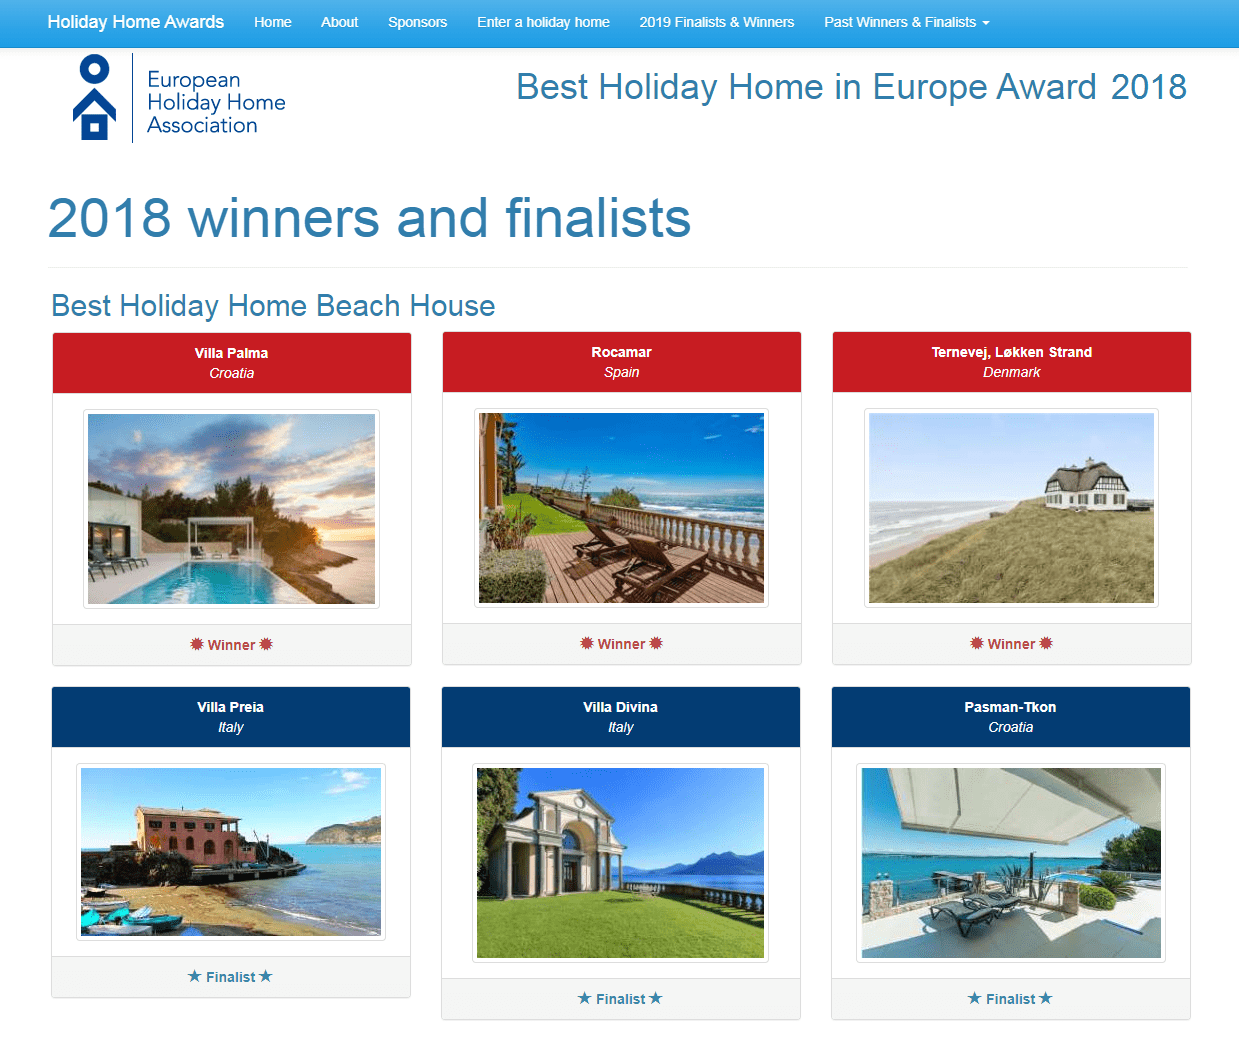 Best Holiday Home Beach House 2018